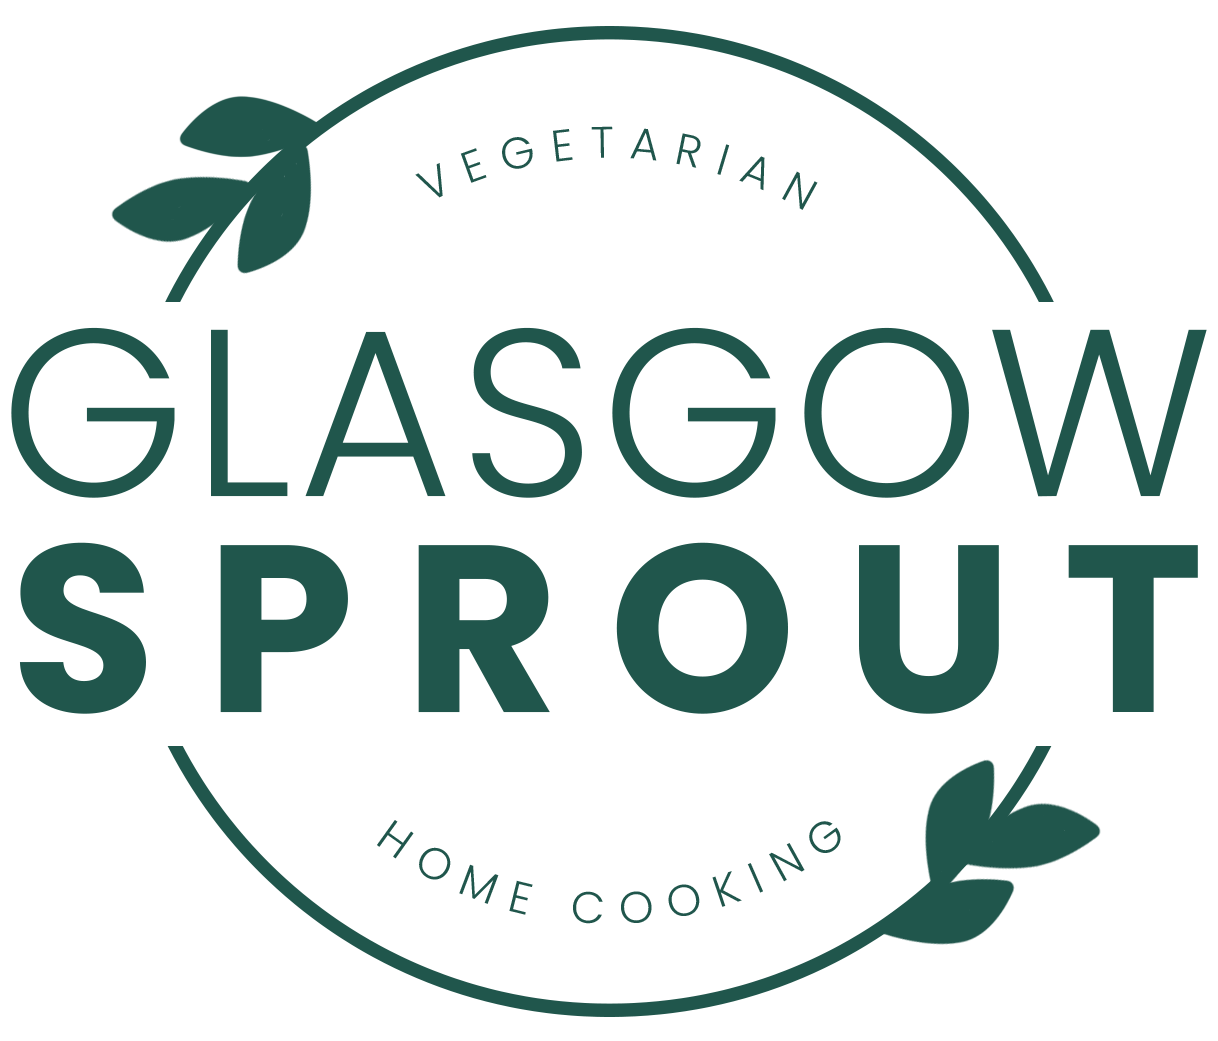 Glasgow Sprout